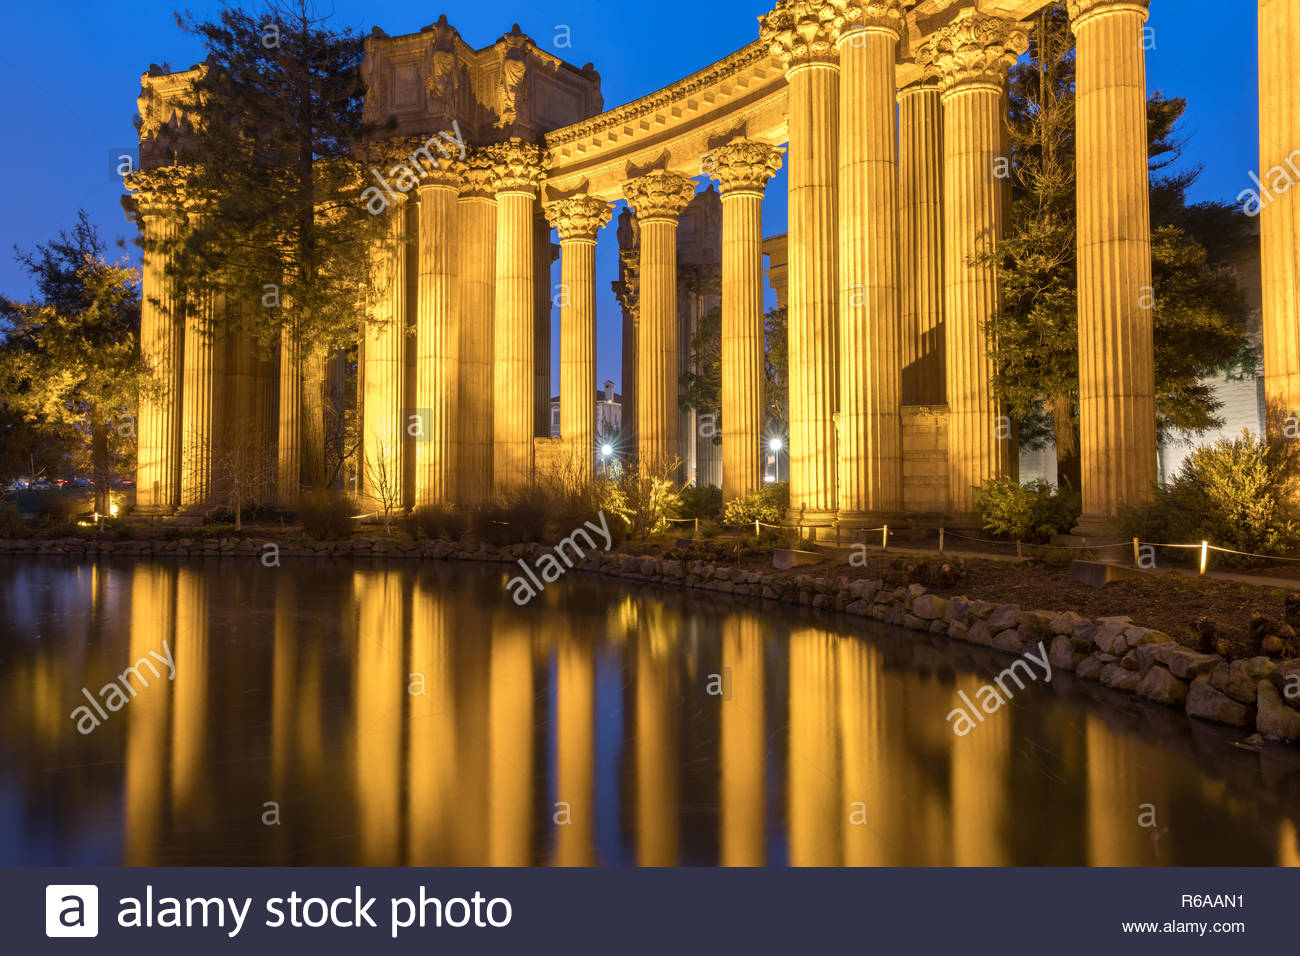 The Palace Colonnade Reflections - Stock Image